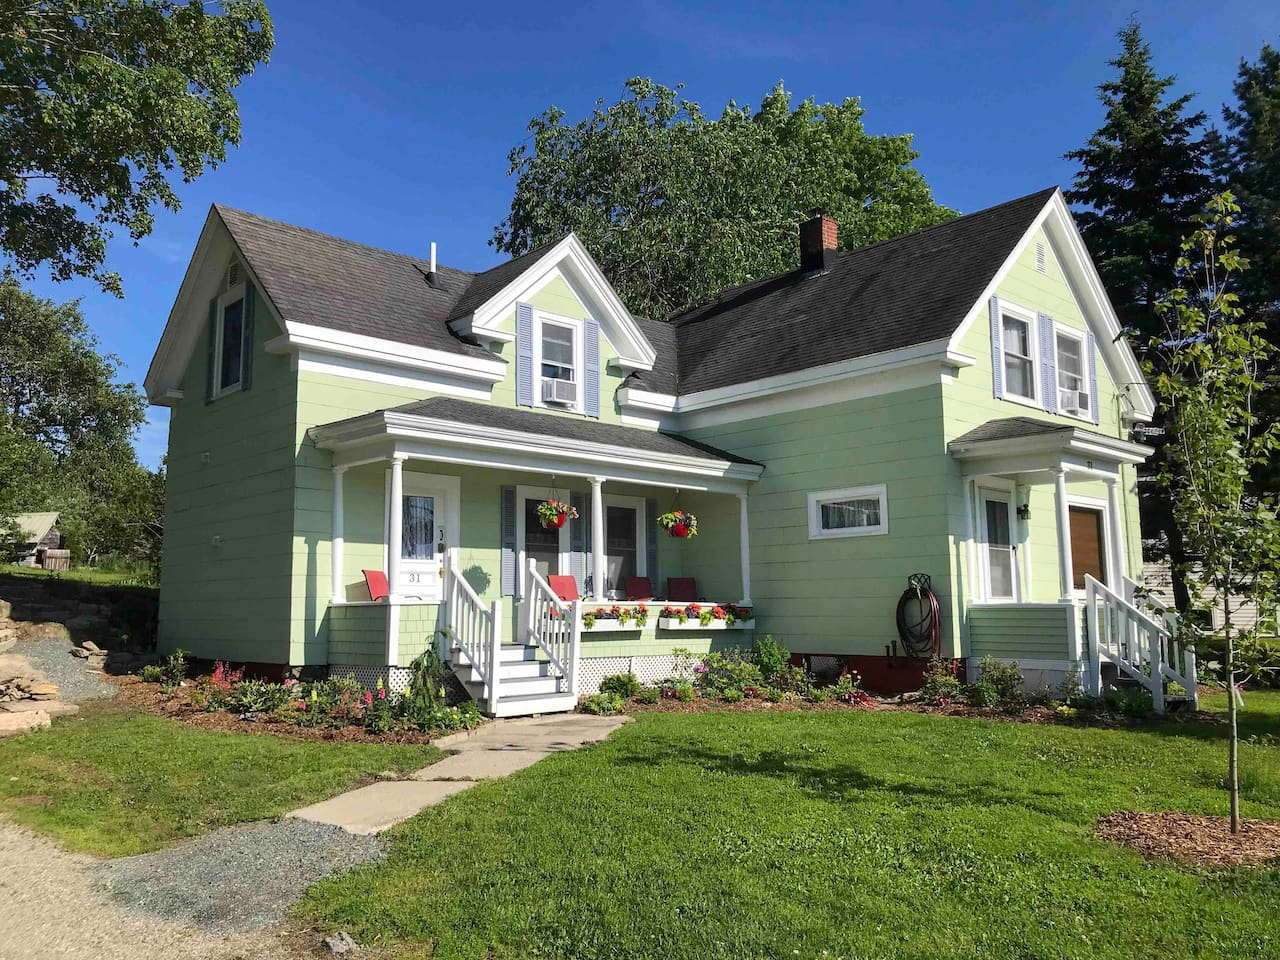 A welcoming Maine cottage & home away from home. A great home base for you to explore the Downeast Coast, Blue Hill Peninsula & Mount Desert Island. Fully equipped and tastefully furnished with attention to details for your comfort and convenience.